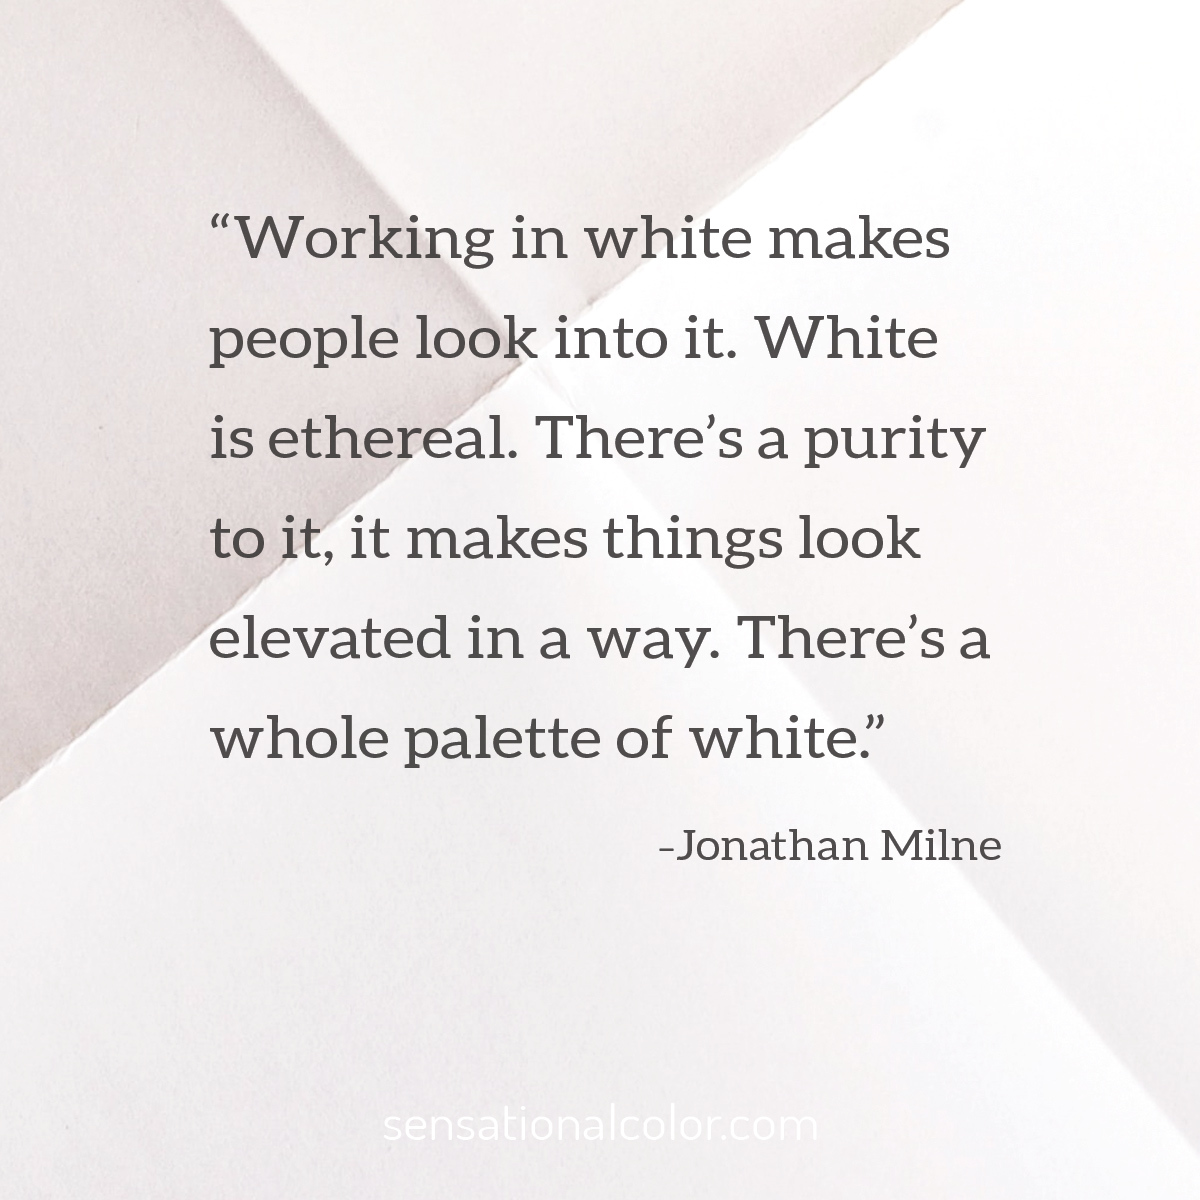 """Working in white makes people look into it. White is ethereal. There's a purity to it, it makes things look elevated in a way. There's a whole palette of white…"" - Jonathan Milne"